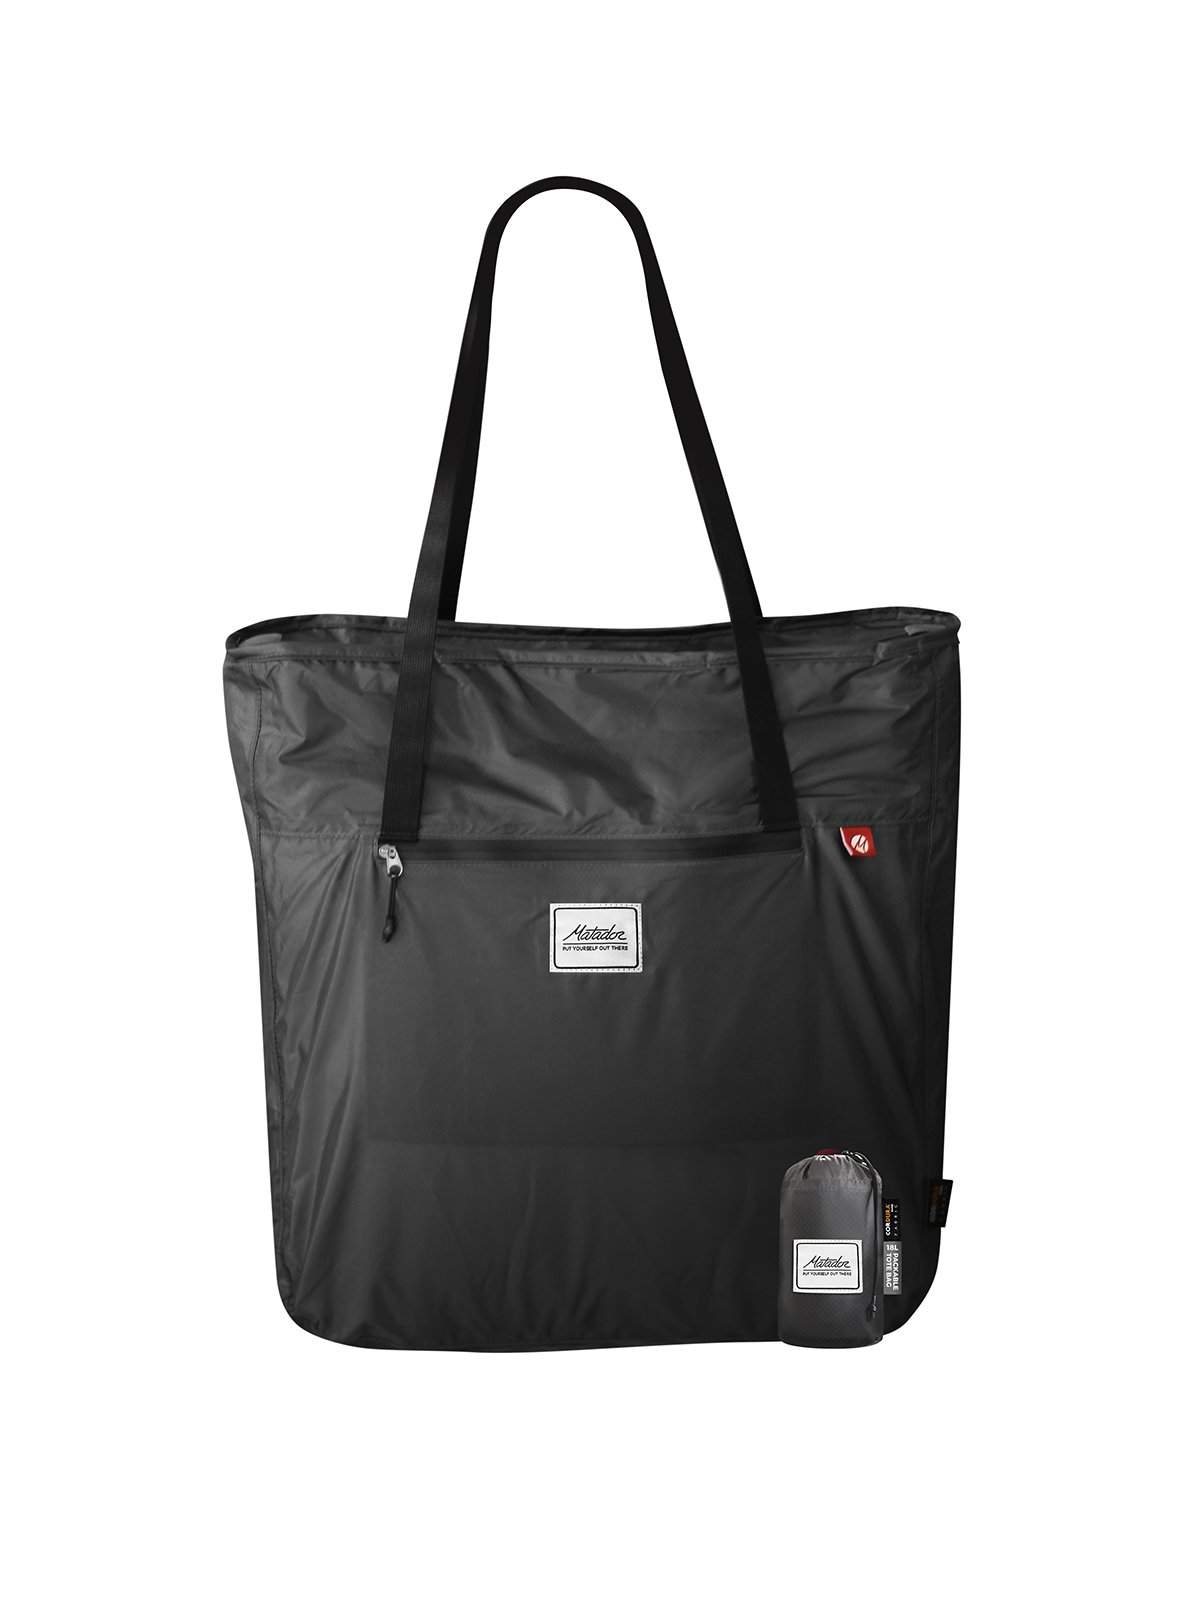 Matador Transit Packable Tote Bag Grey - MORE by Morello Indonesia